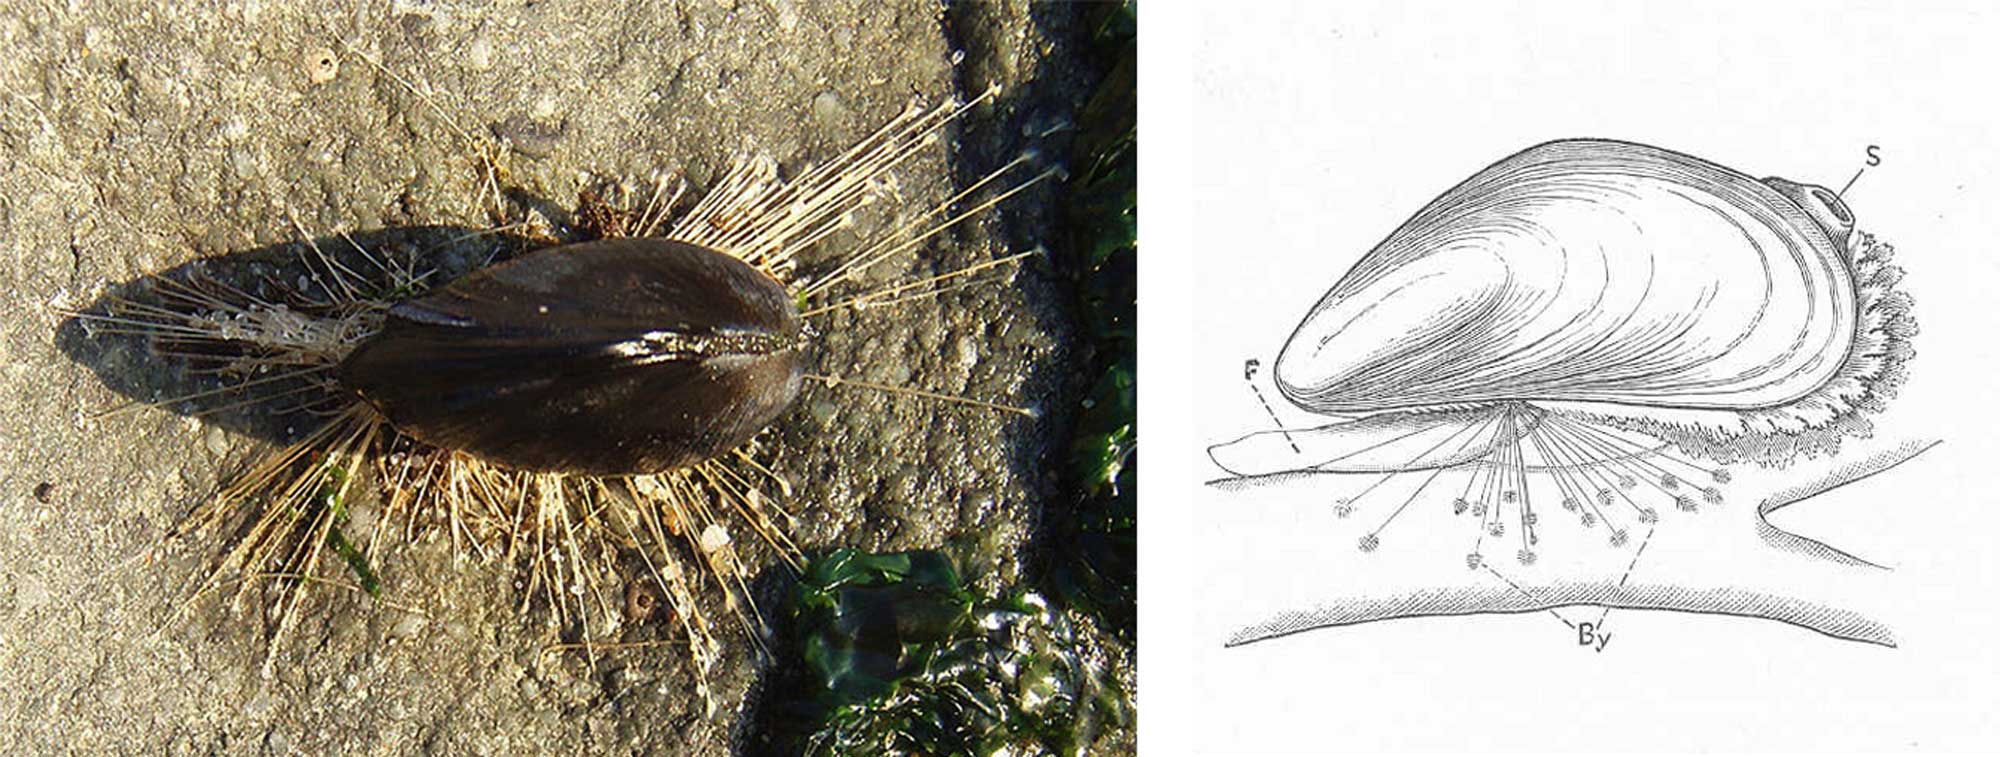 Image showing a photograph and drawing of bivalves attached to hard substrates with byssal threads.